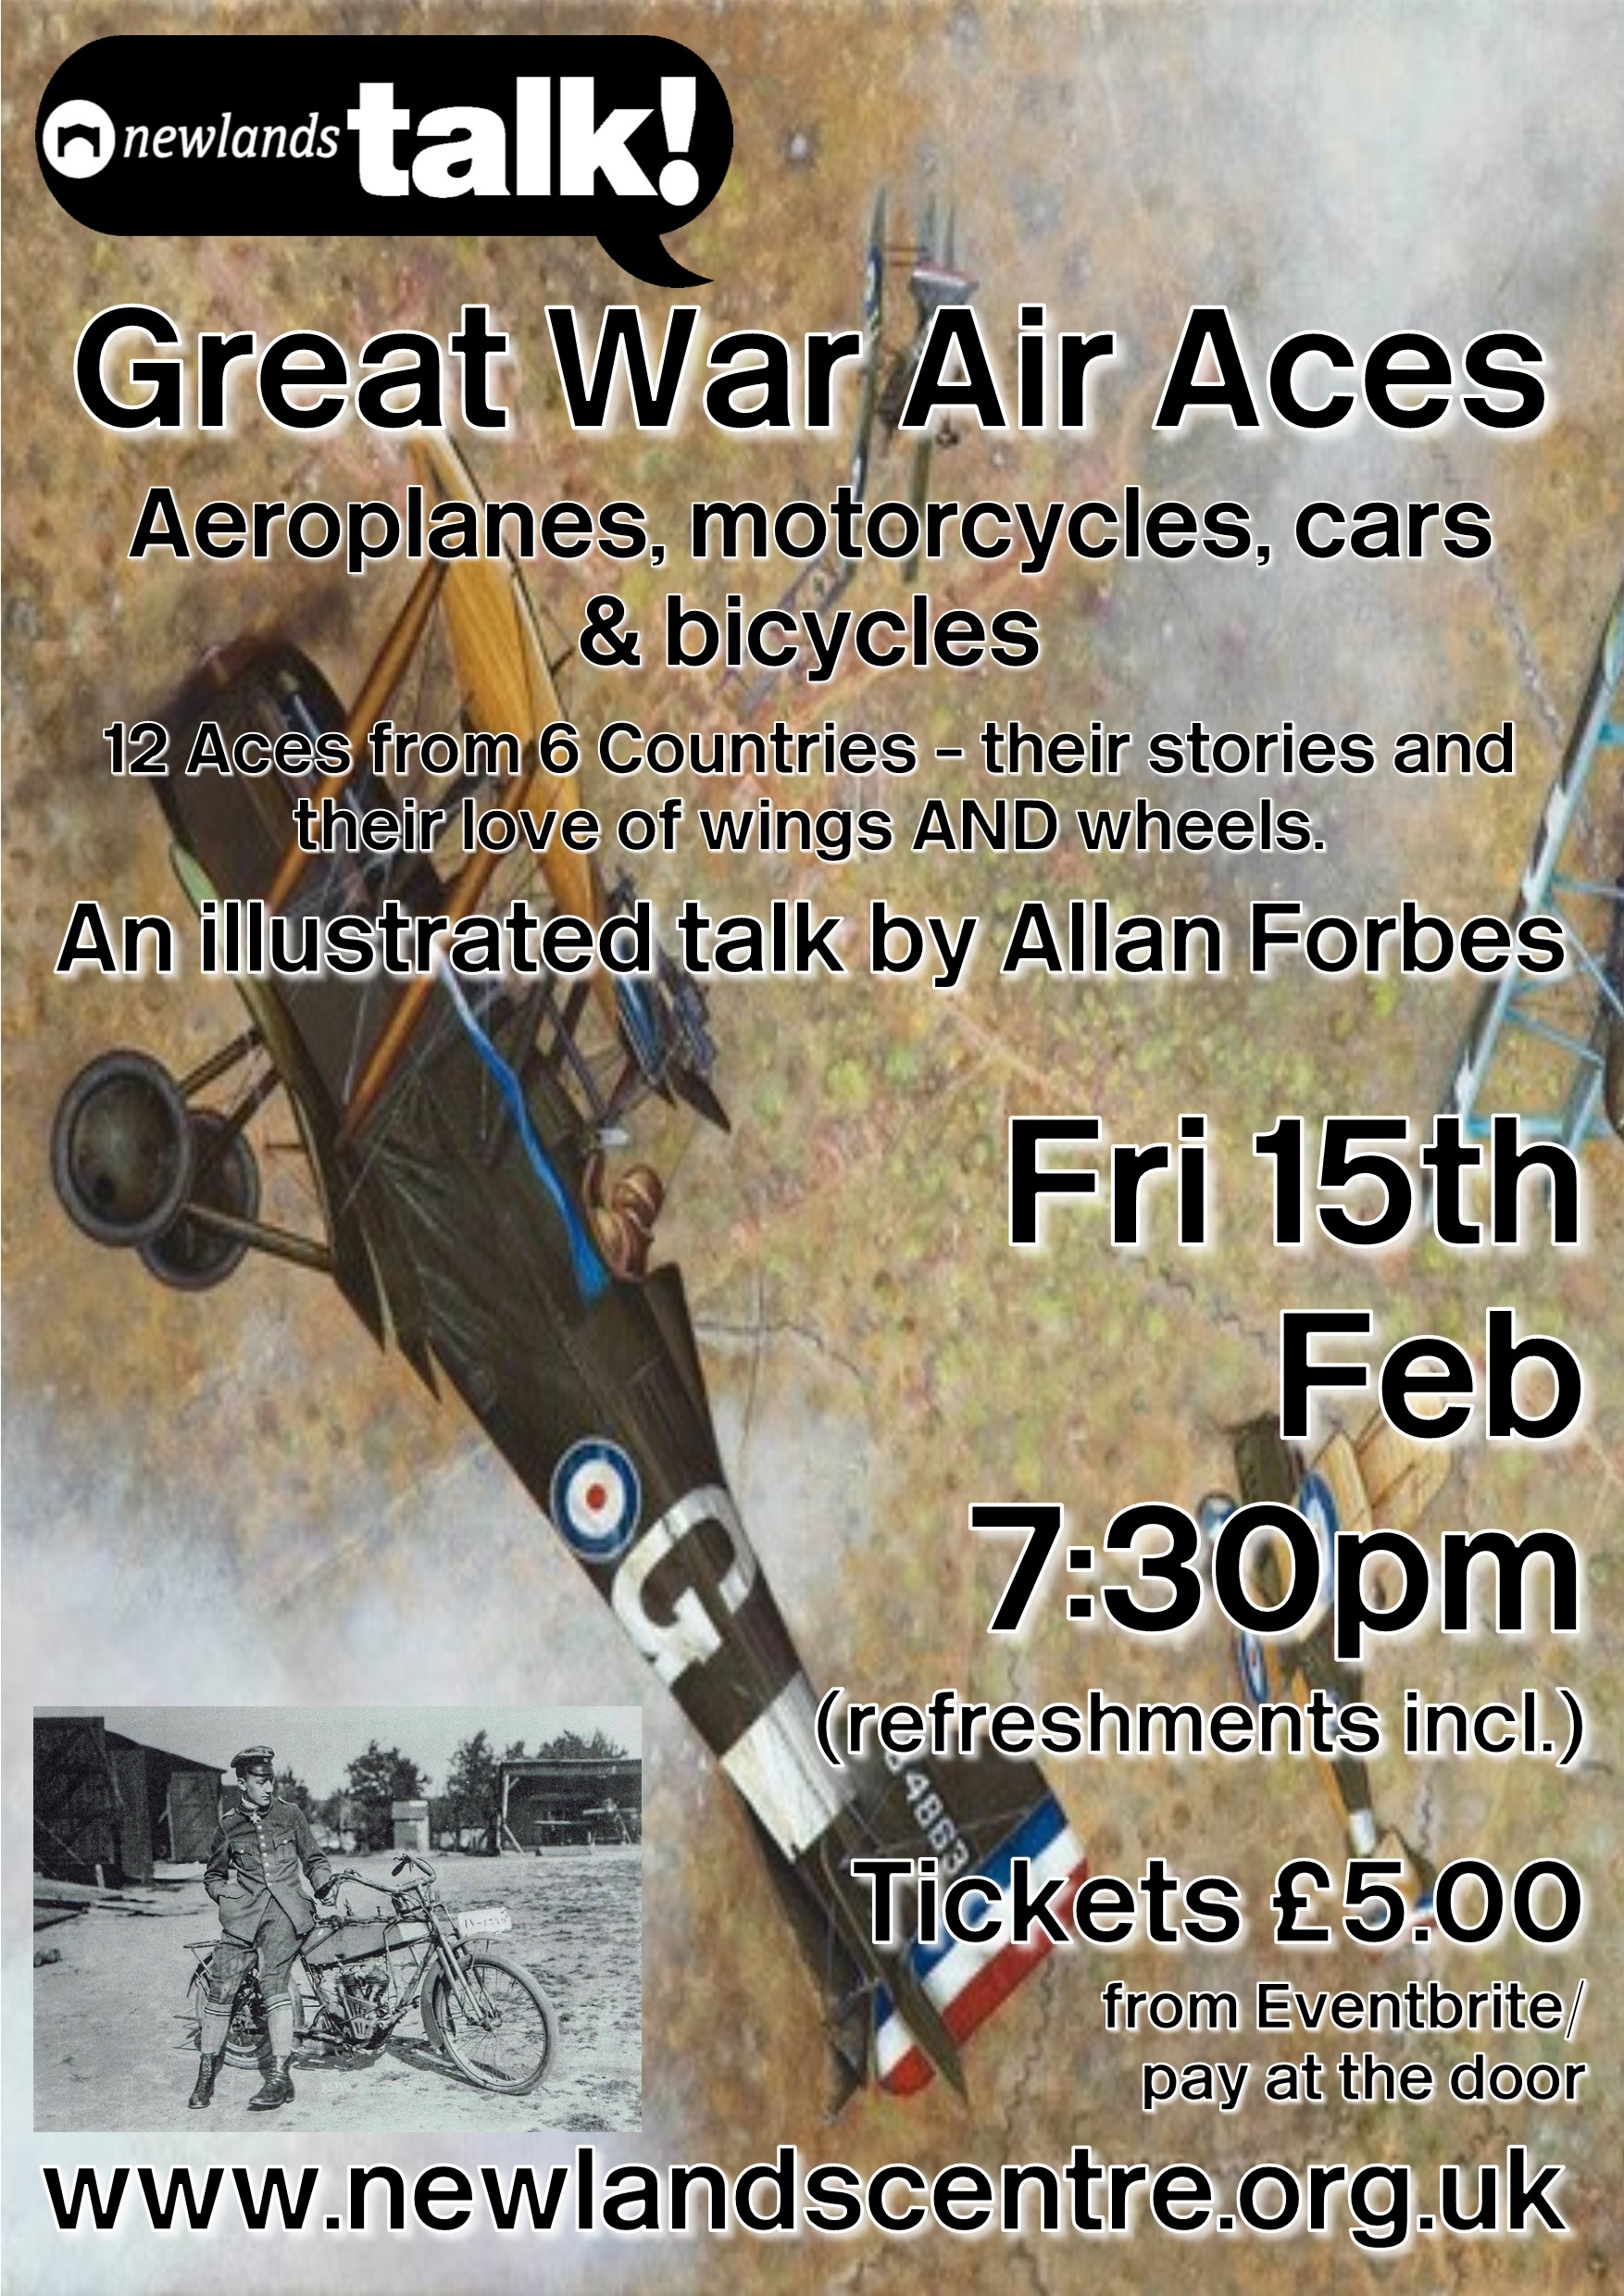 Great War Air Aces poster